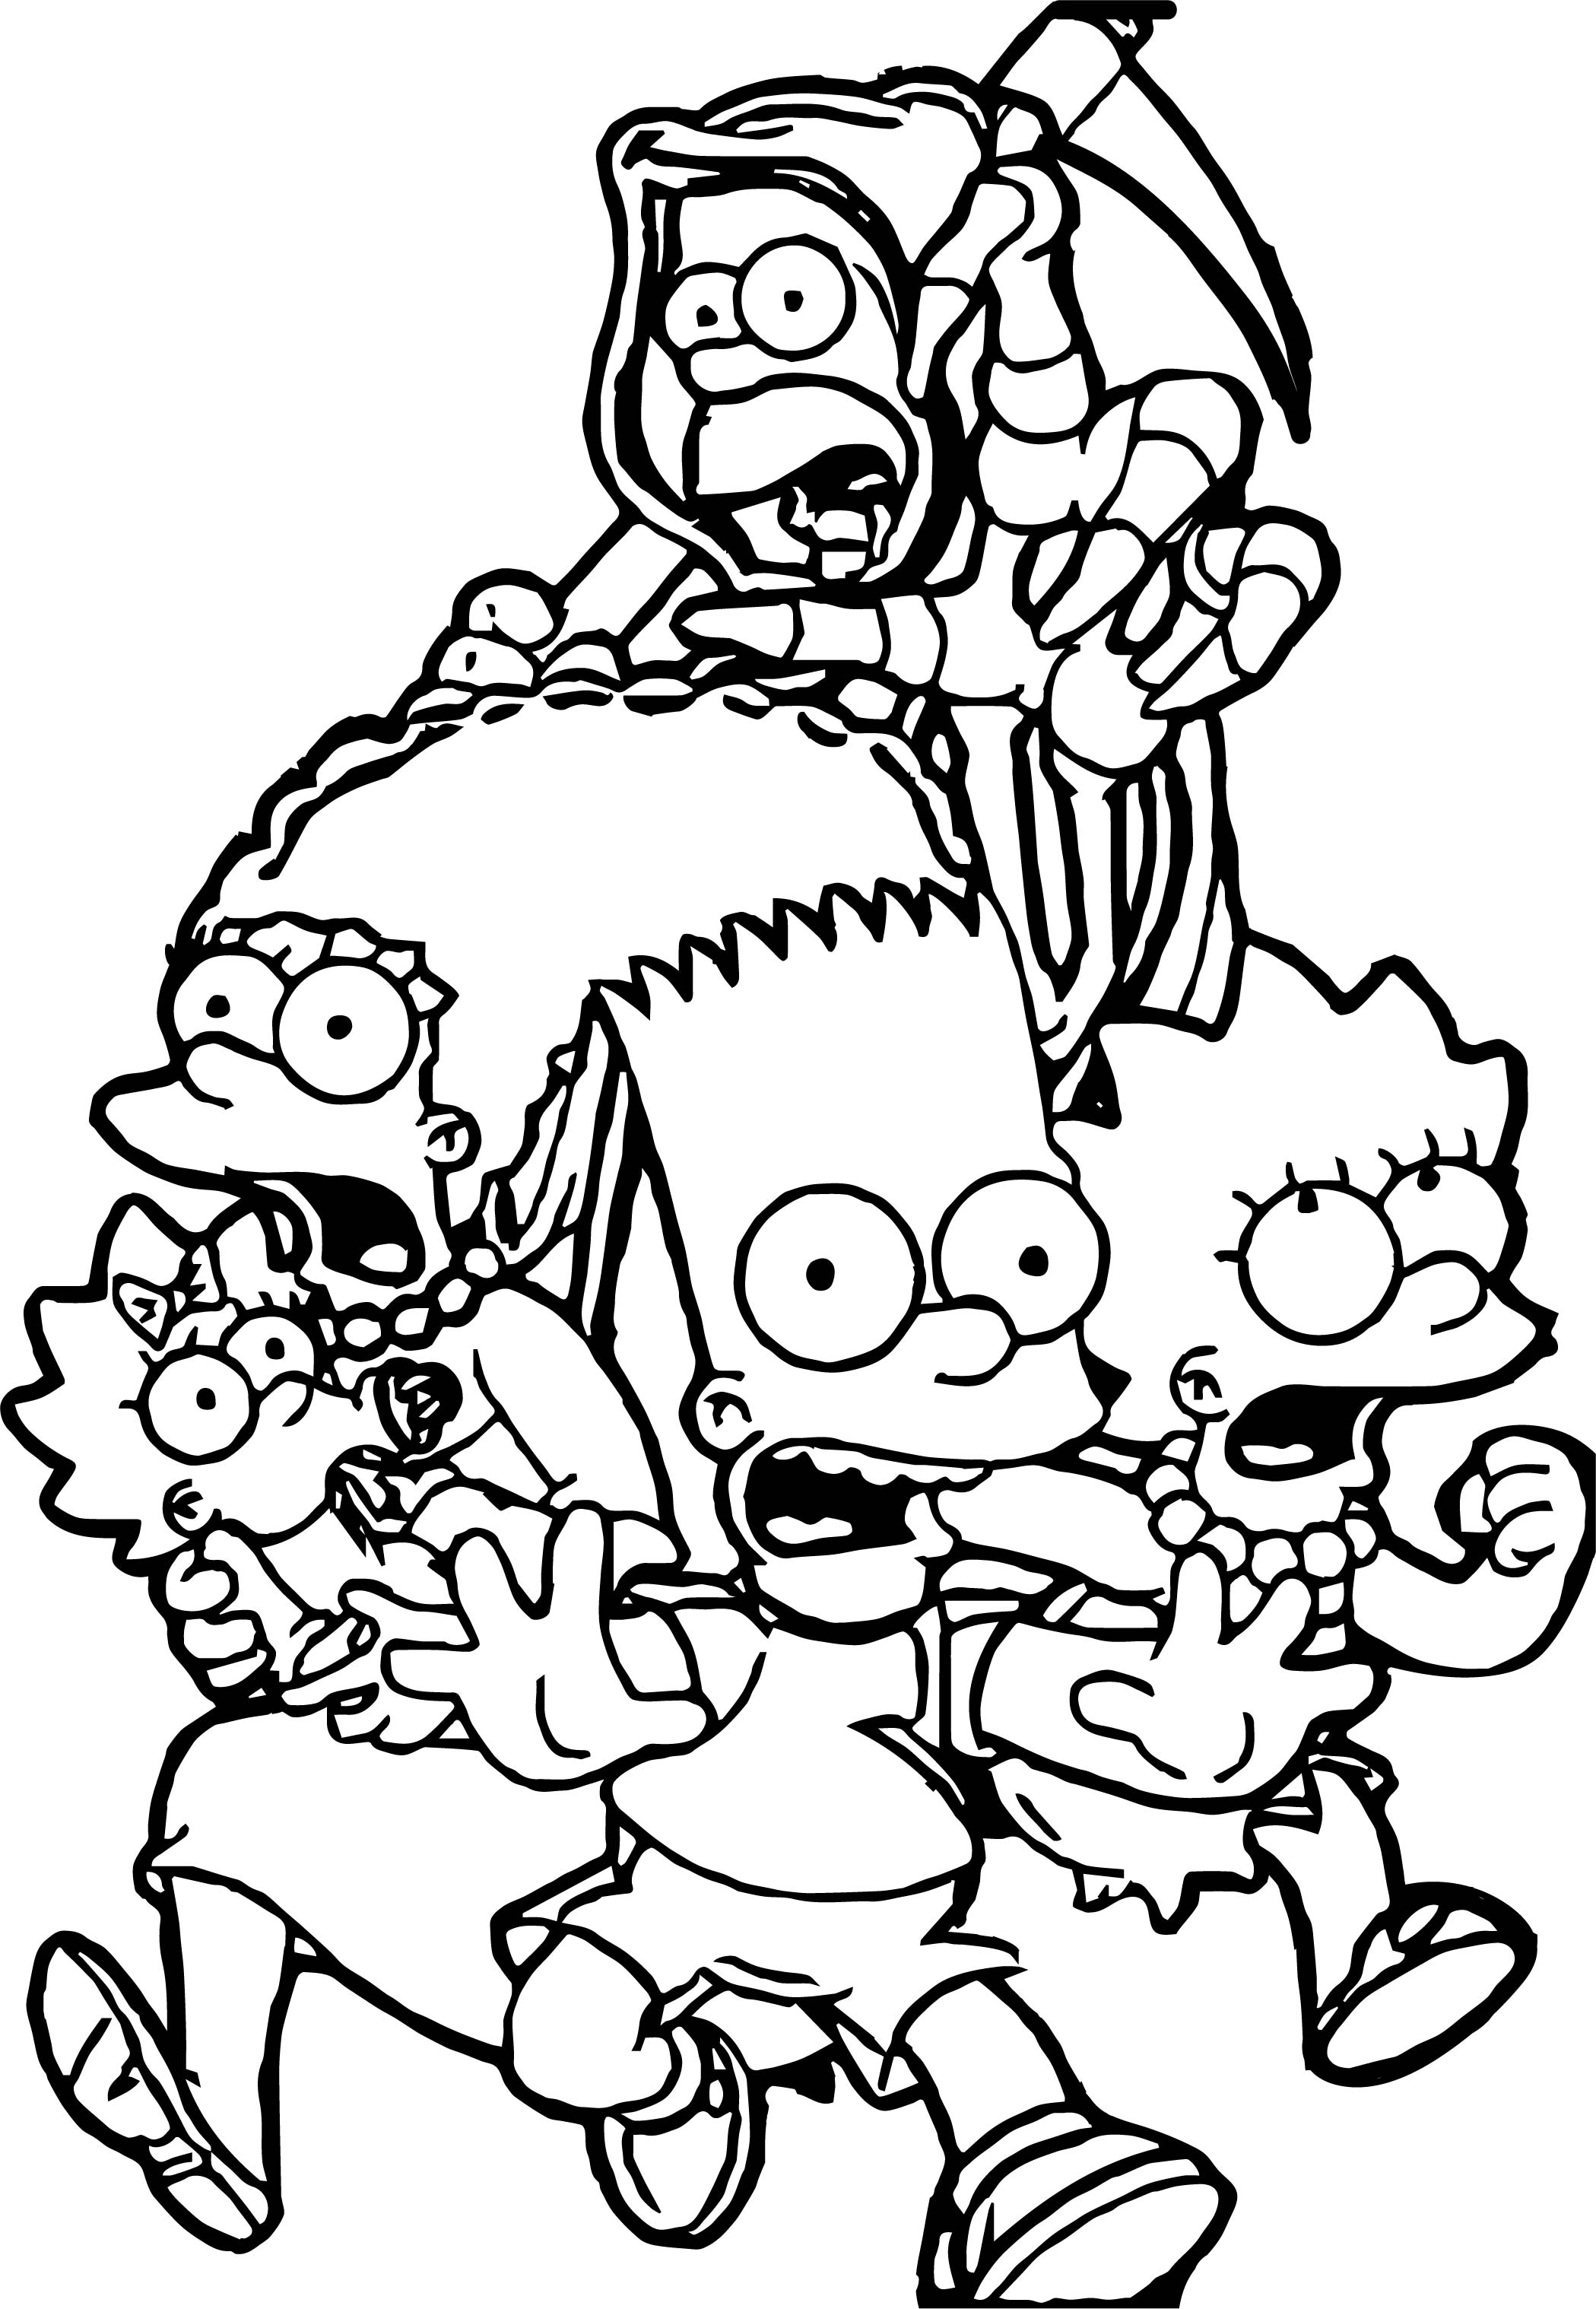 The Simpsons The Simpsons Scream Run Coloring Page